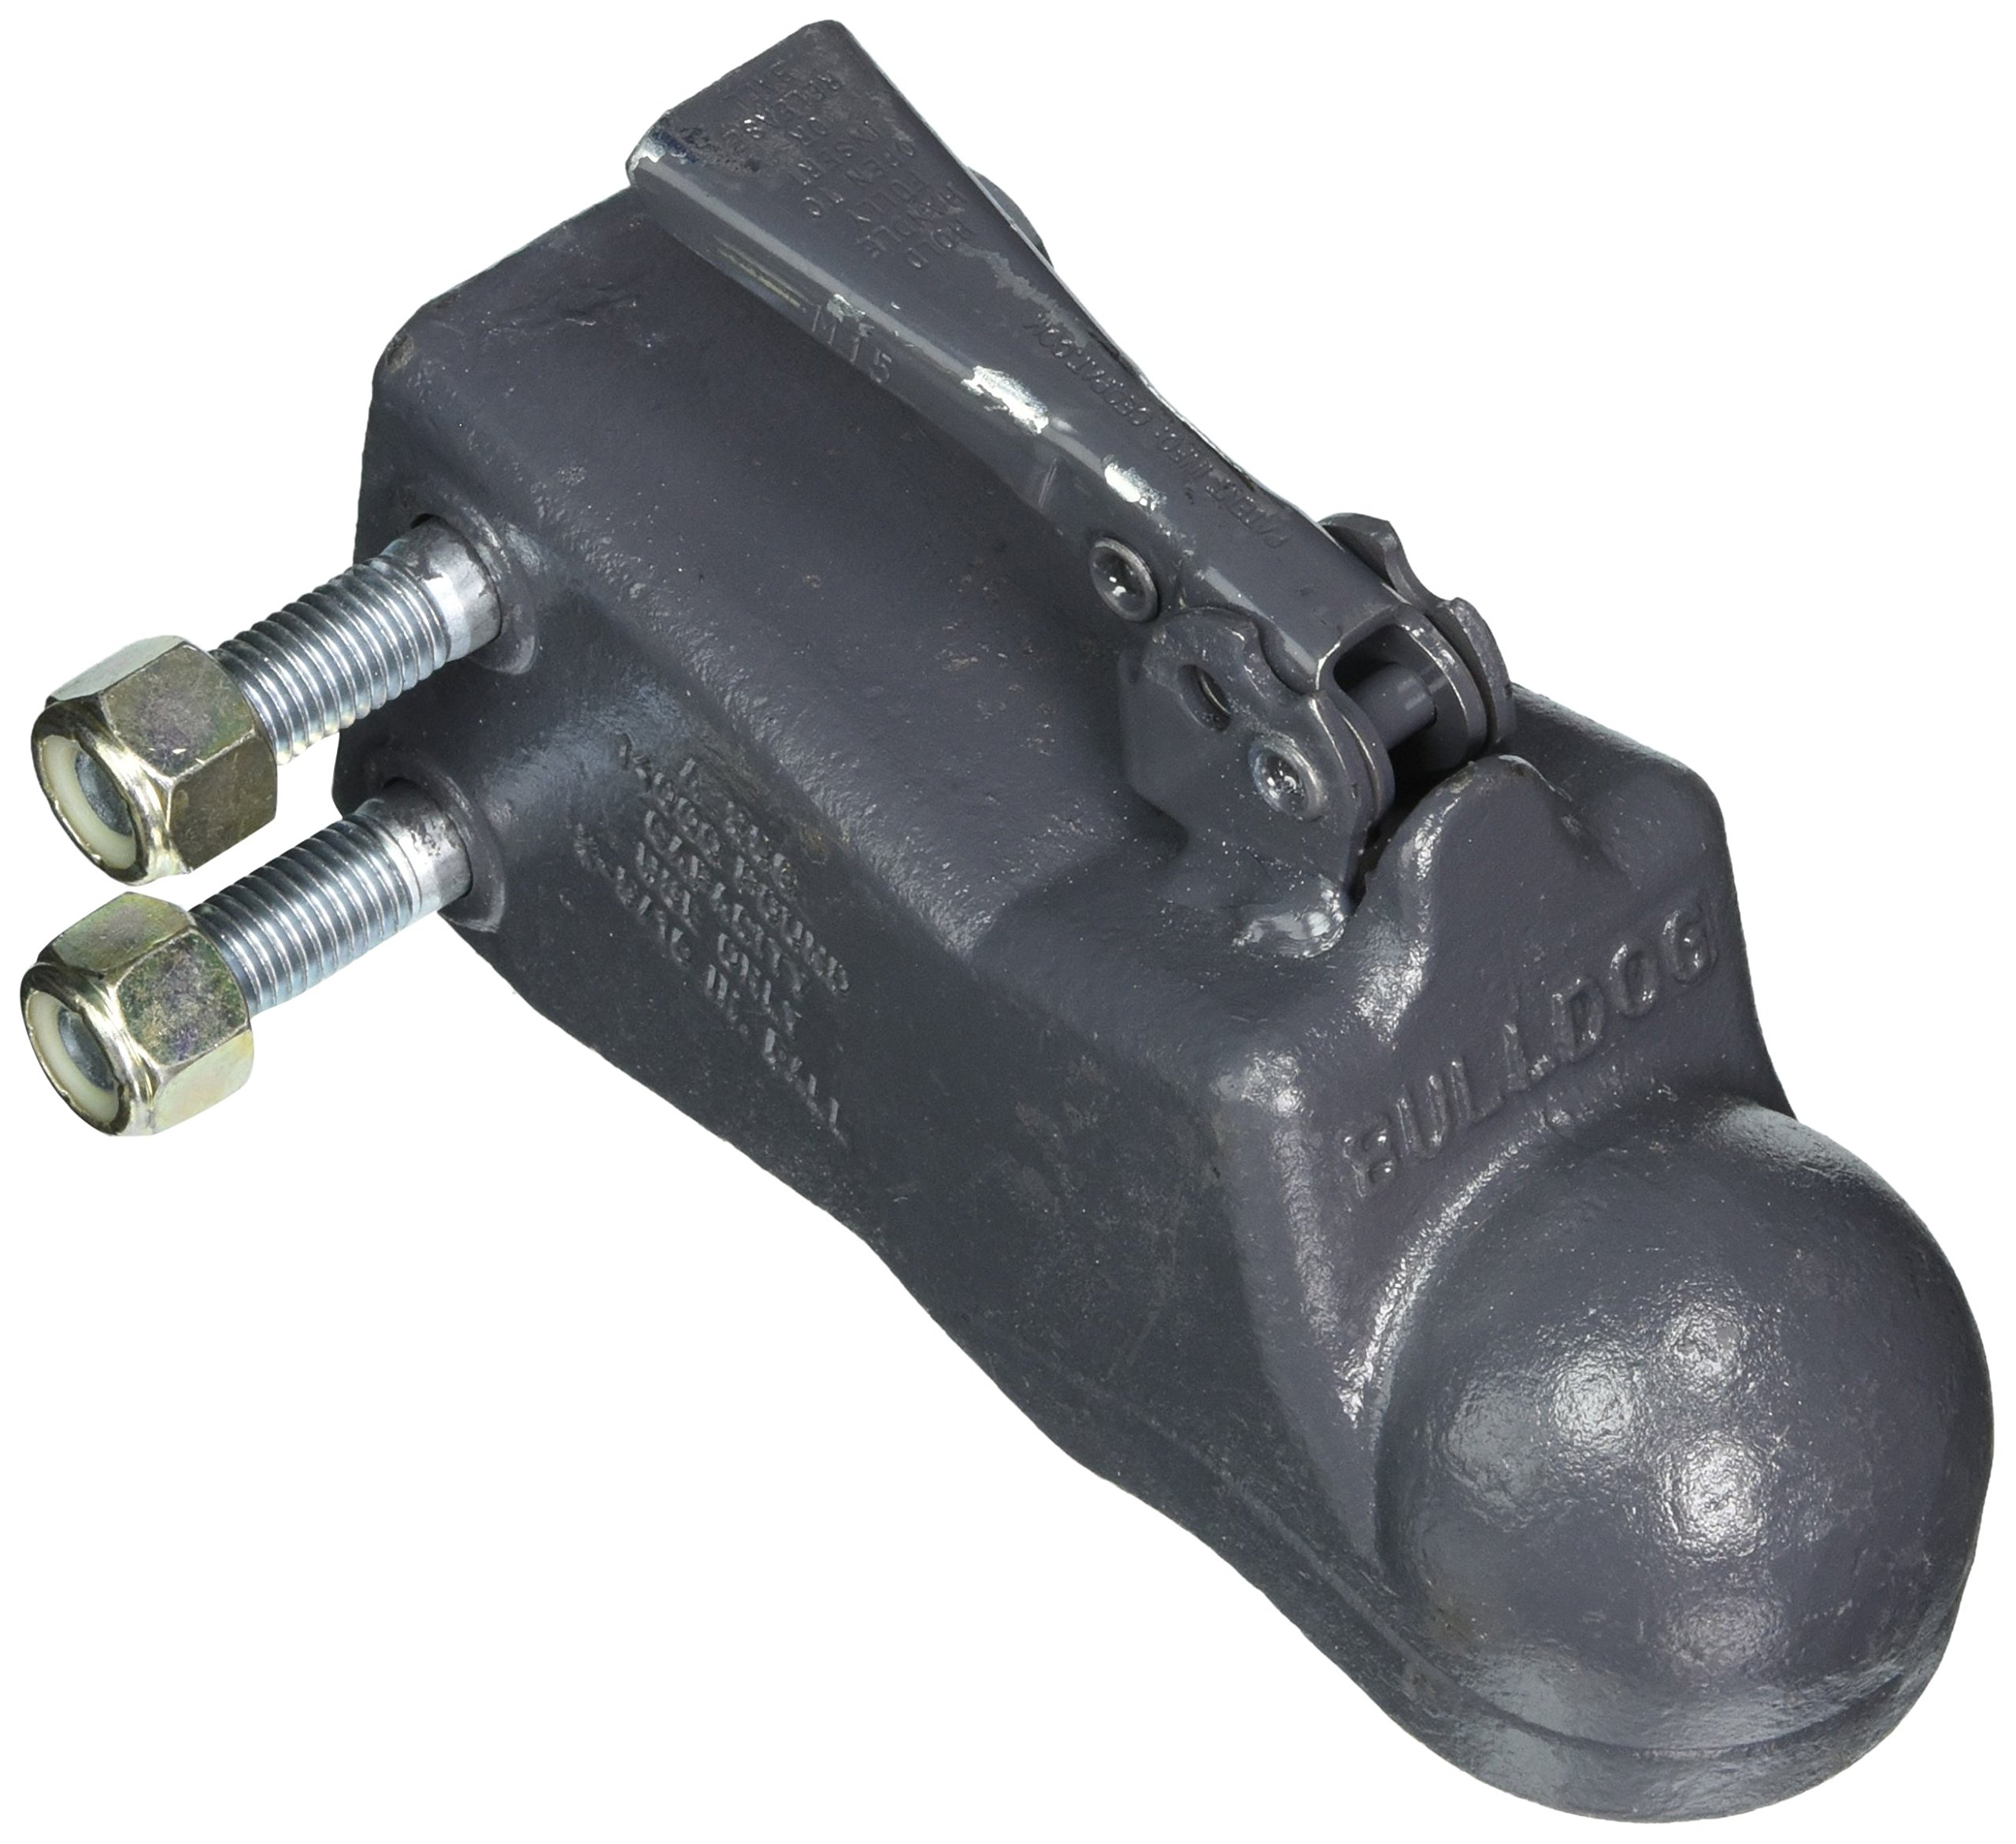 Bulldog A256C0317 Adjustable Coupler by Bulldog